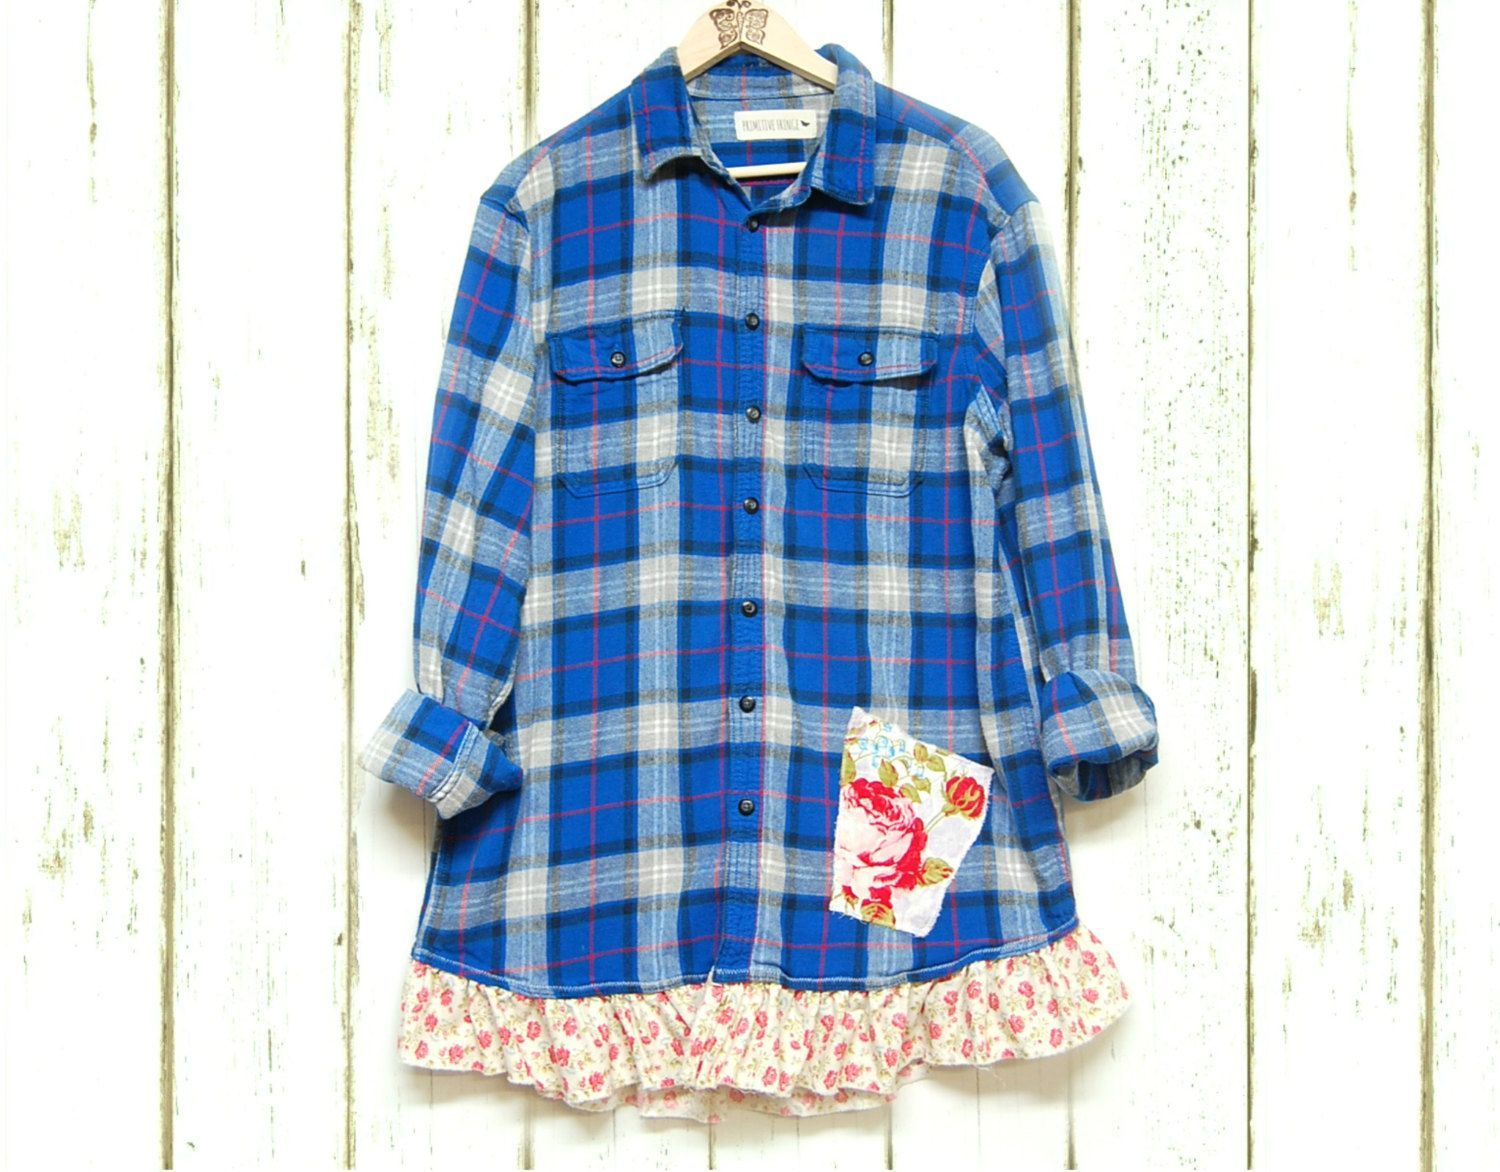 Flannel shirt and shorts men  Image result for mens linen shirts recycled  Upcycled clothing